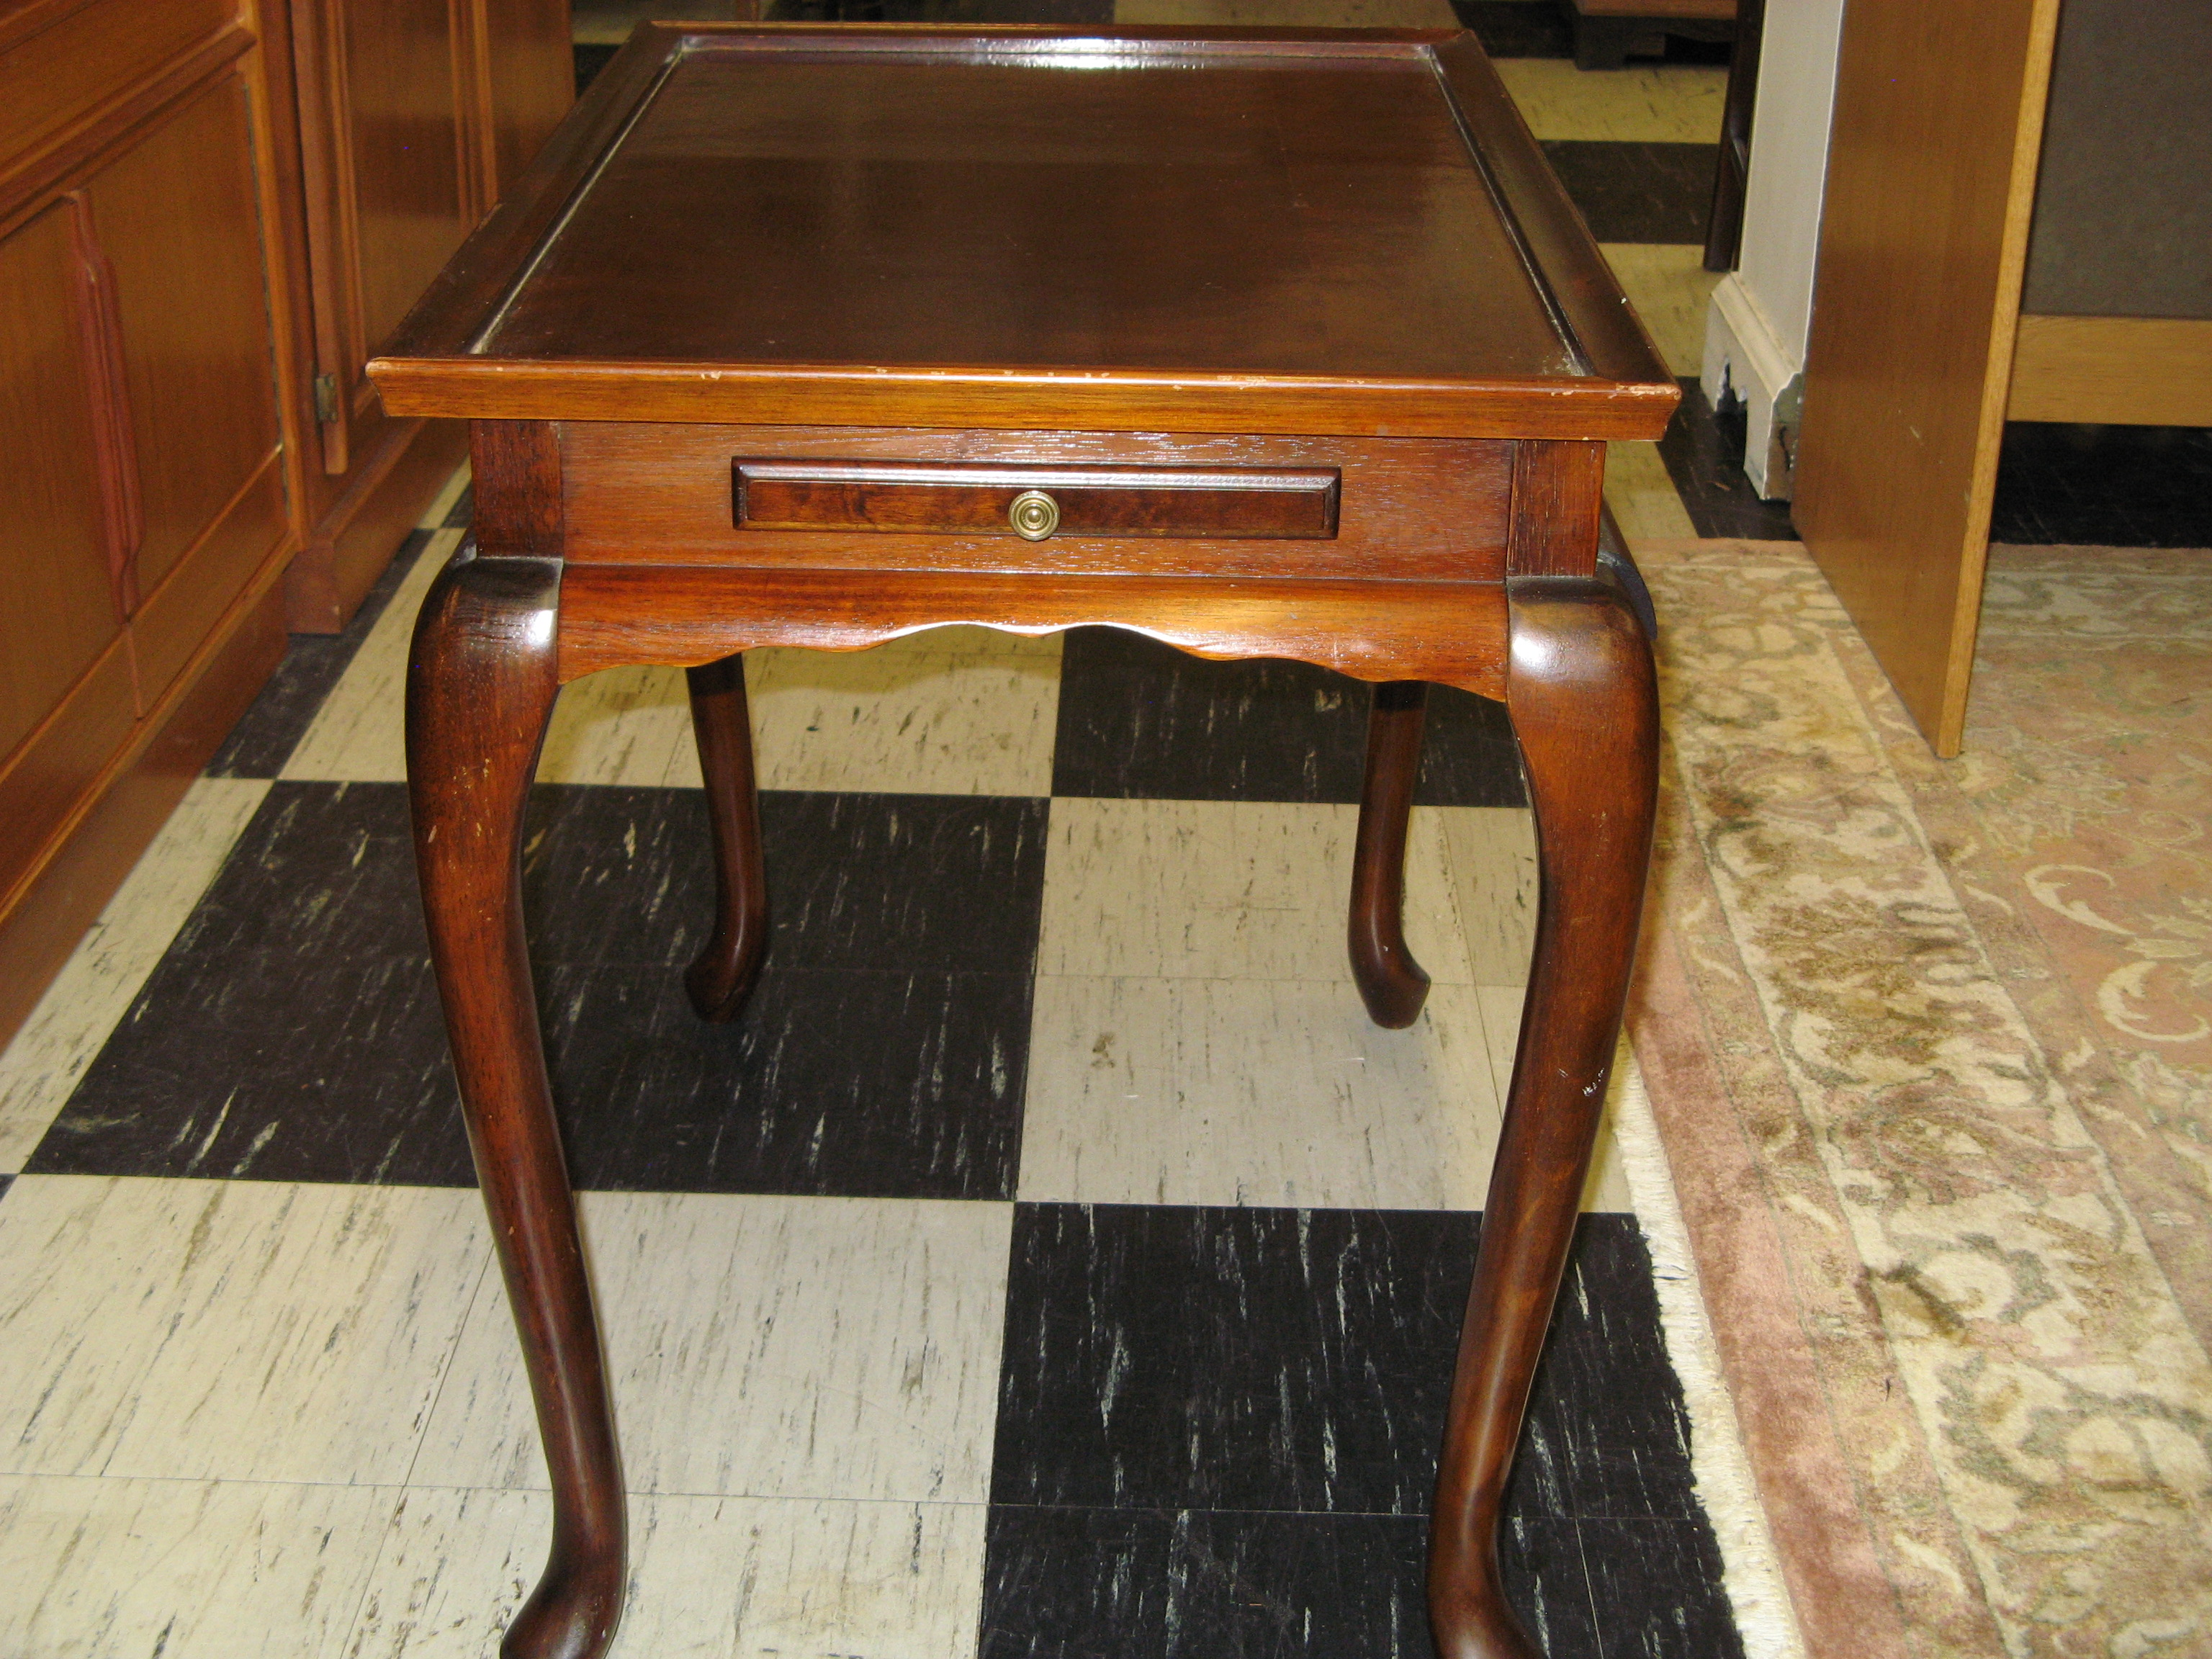 End Table with Tray Top, Pullout Writing Slates & Cabriole Legs